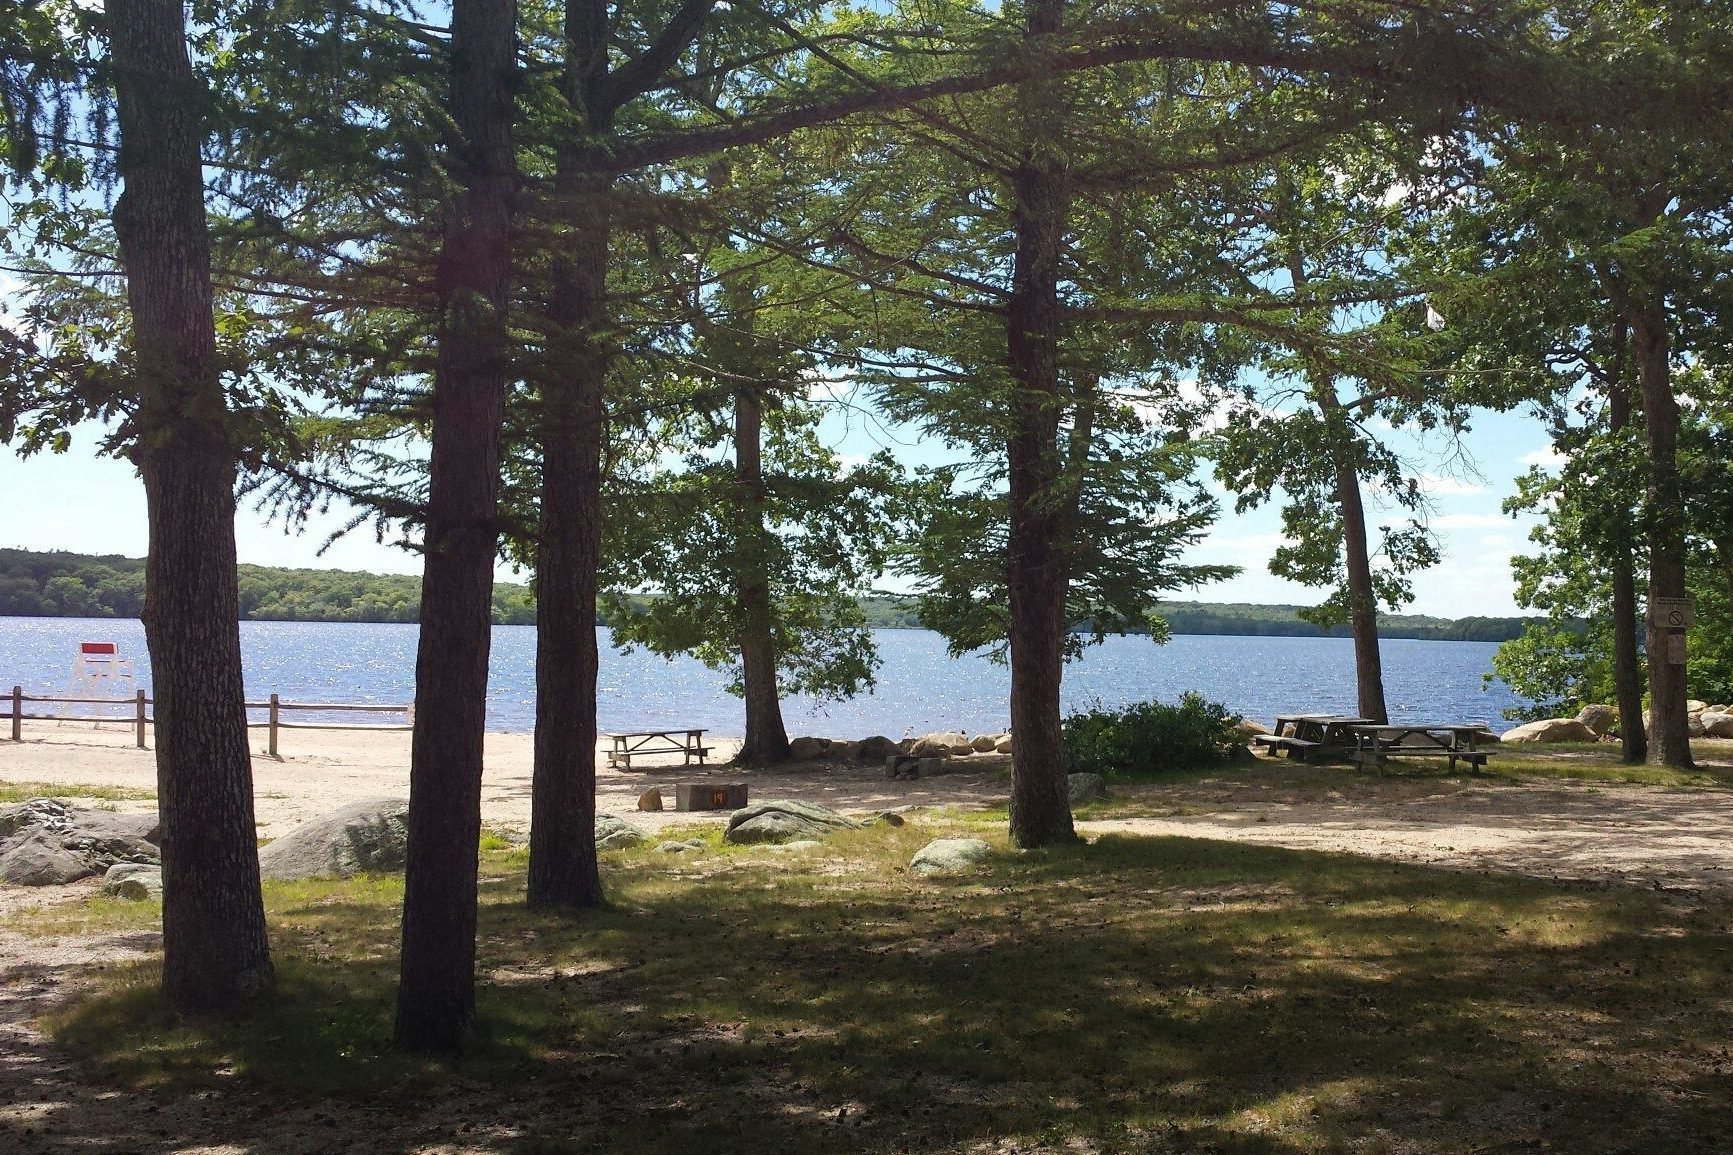 Rhode Island: Burlingame State Park and Campground